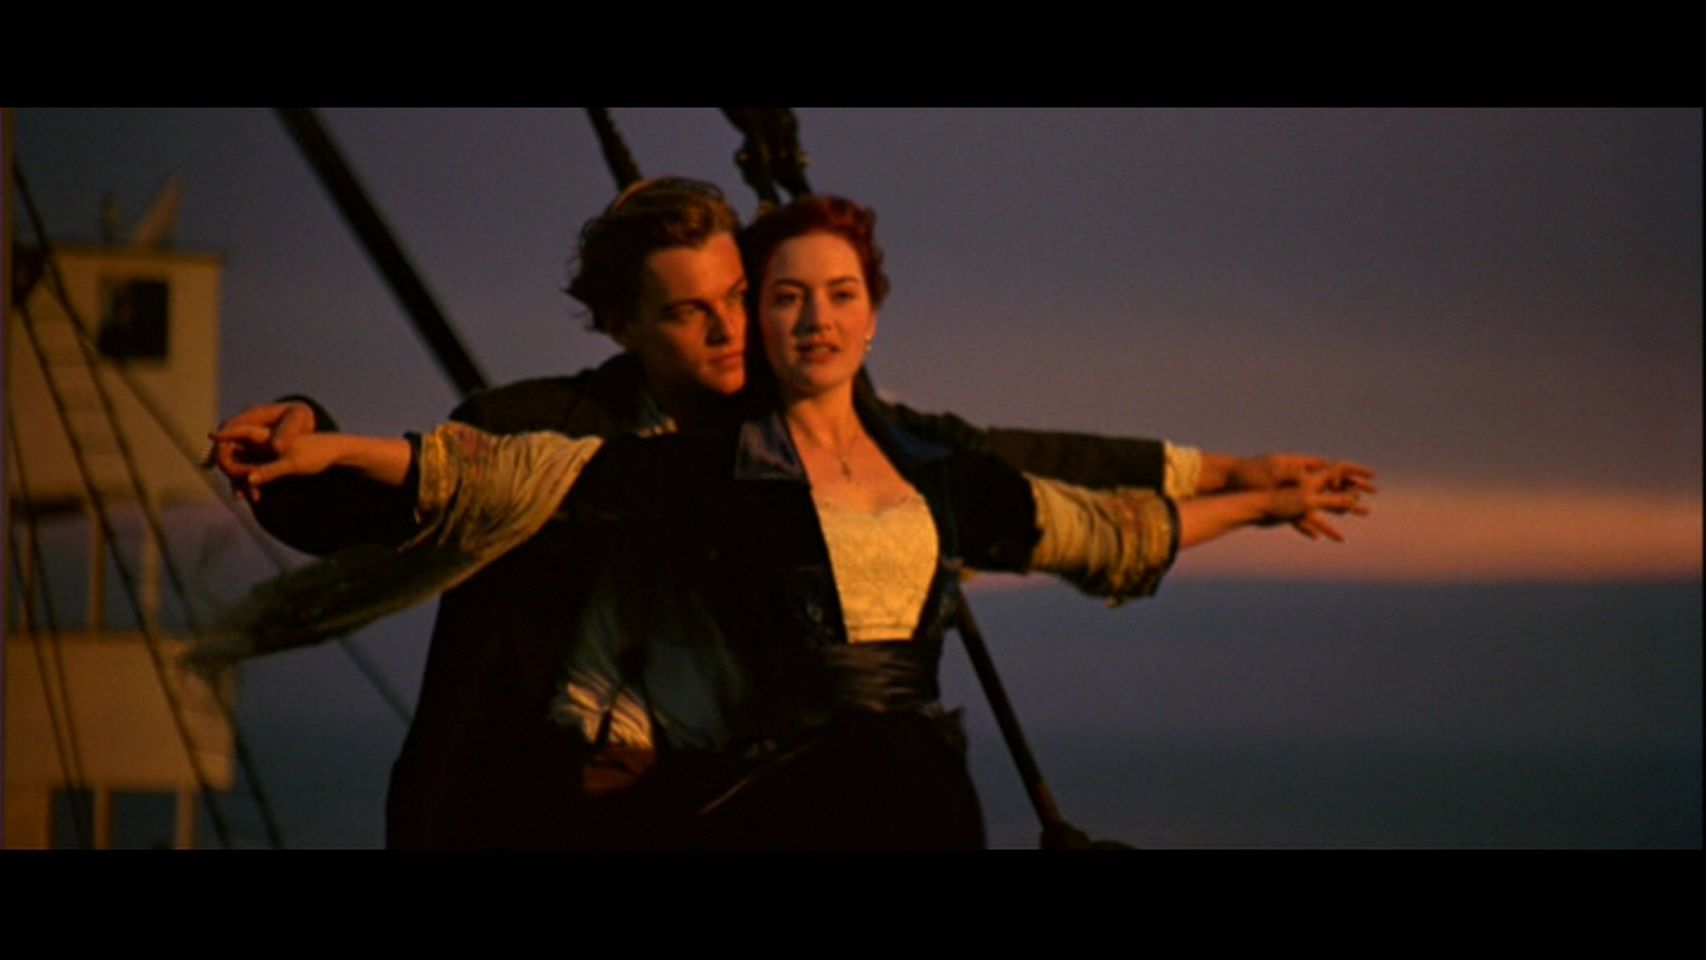 Titanic jack rose jack and rose image 22328000 - Jack and rose pics ...